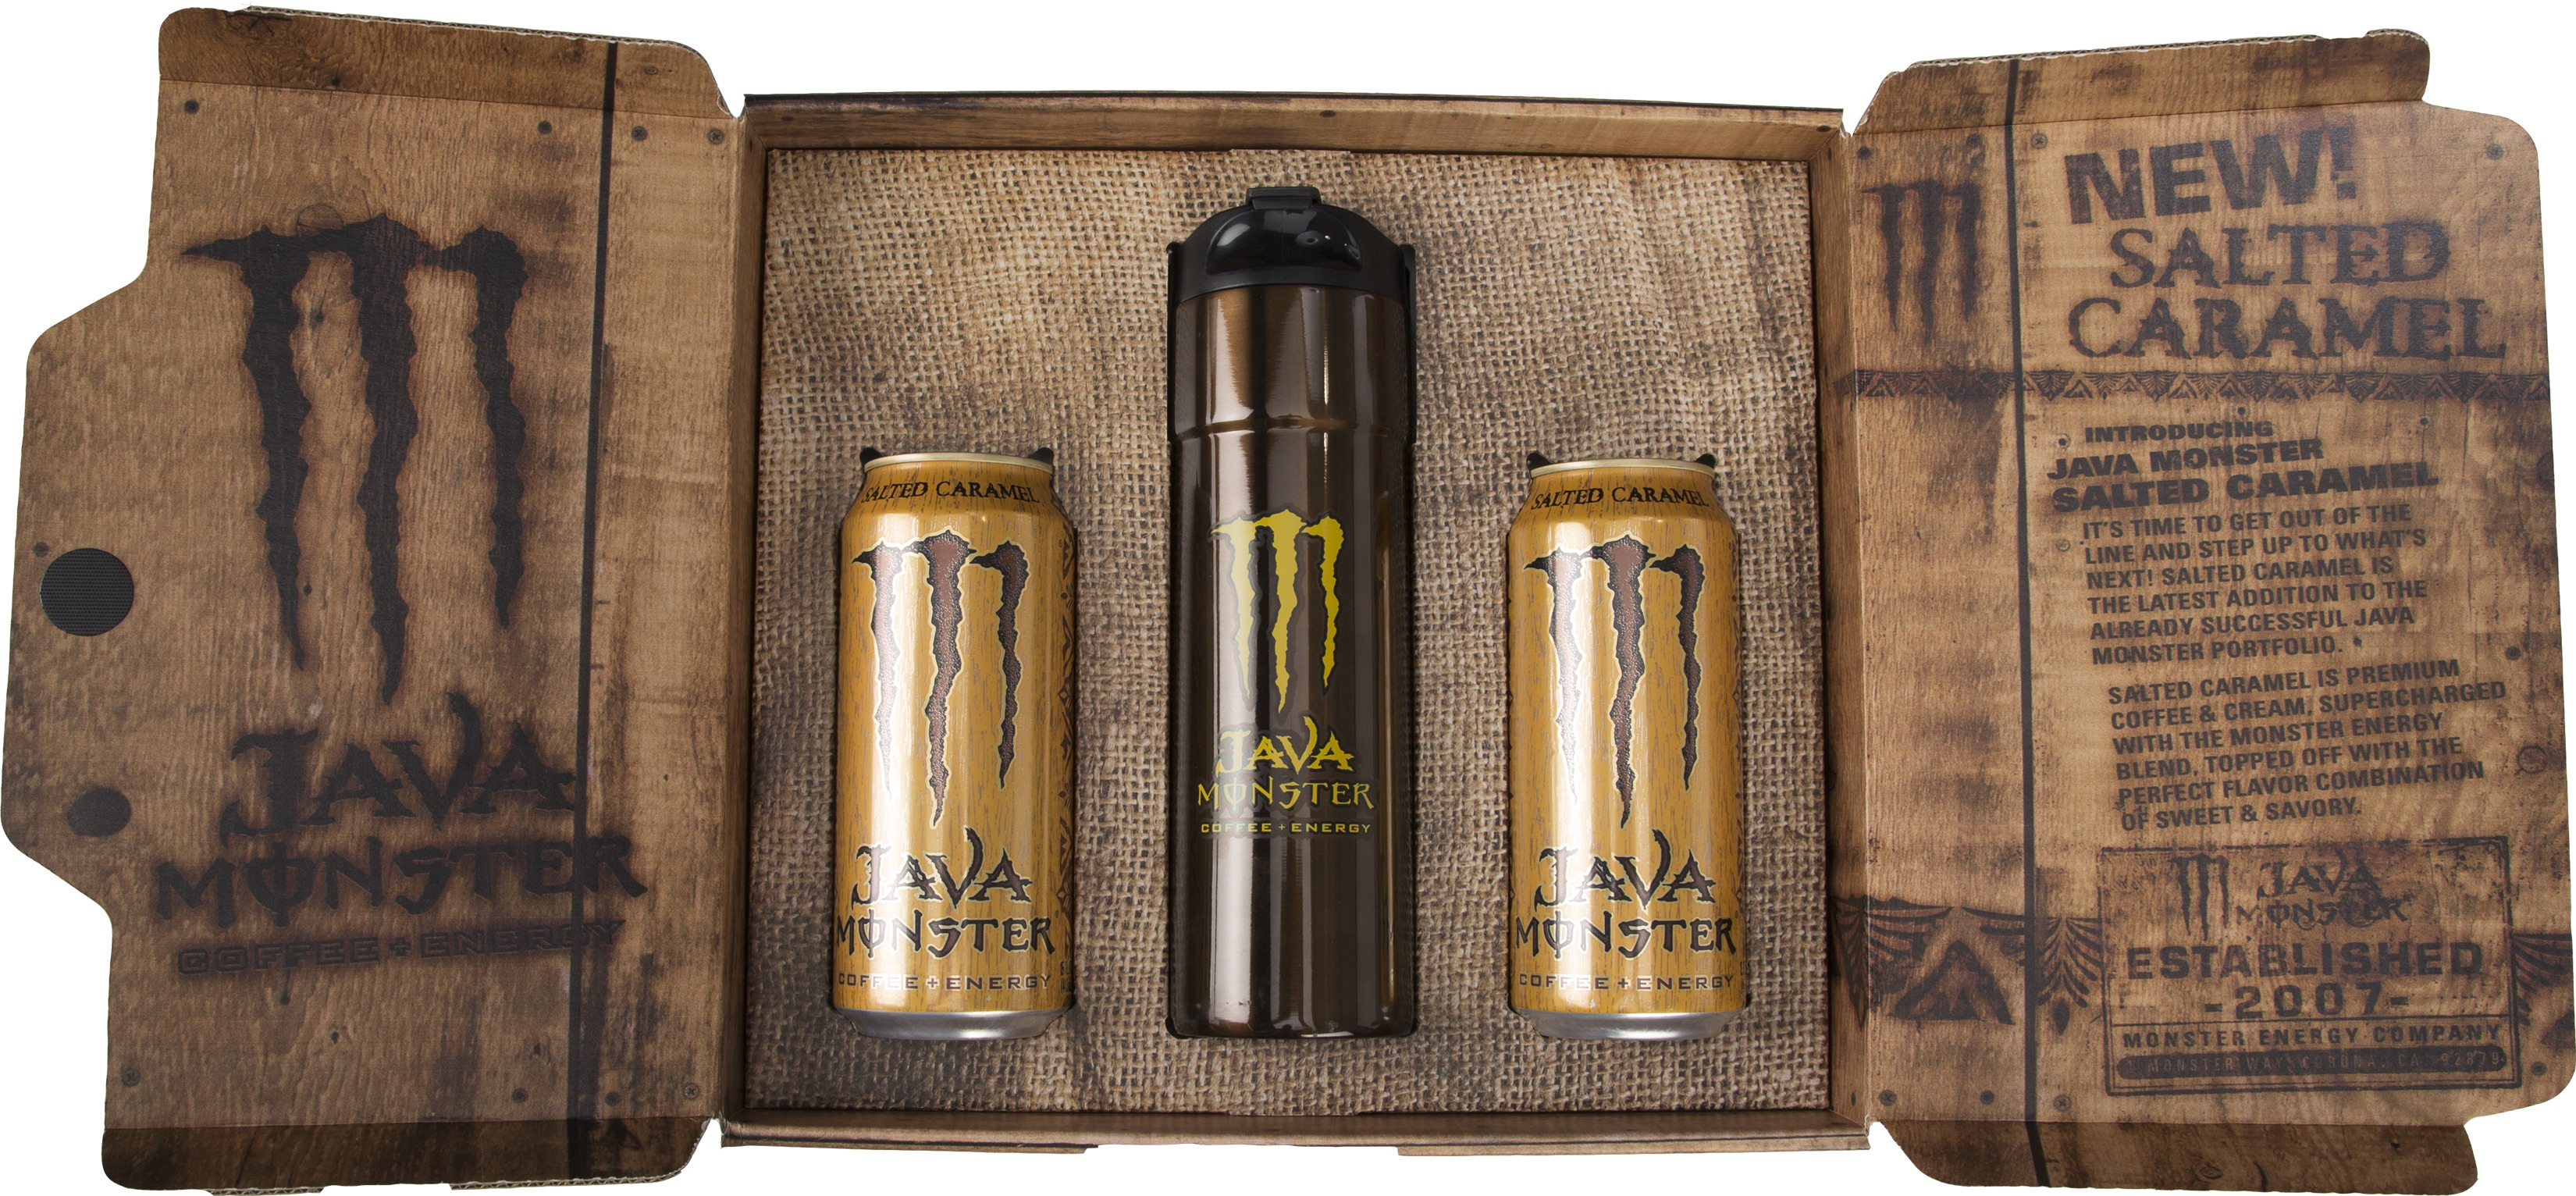 Java Monster Introduces Its Newest Drink Salted Caramel